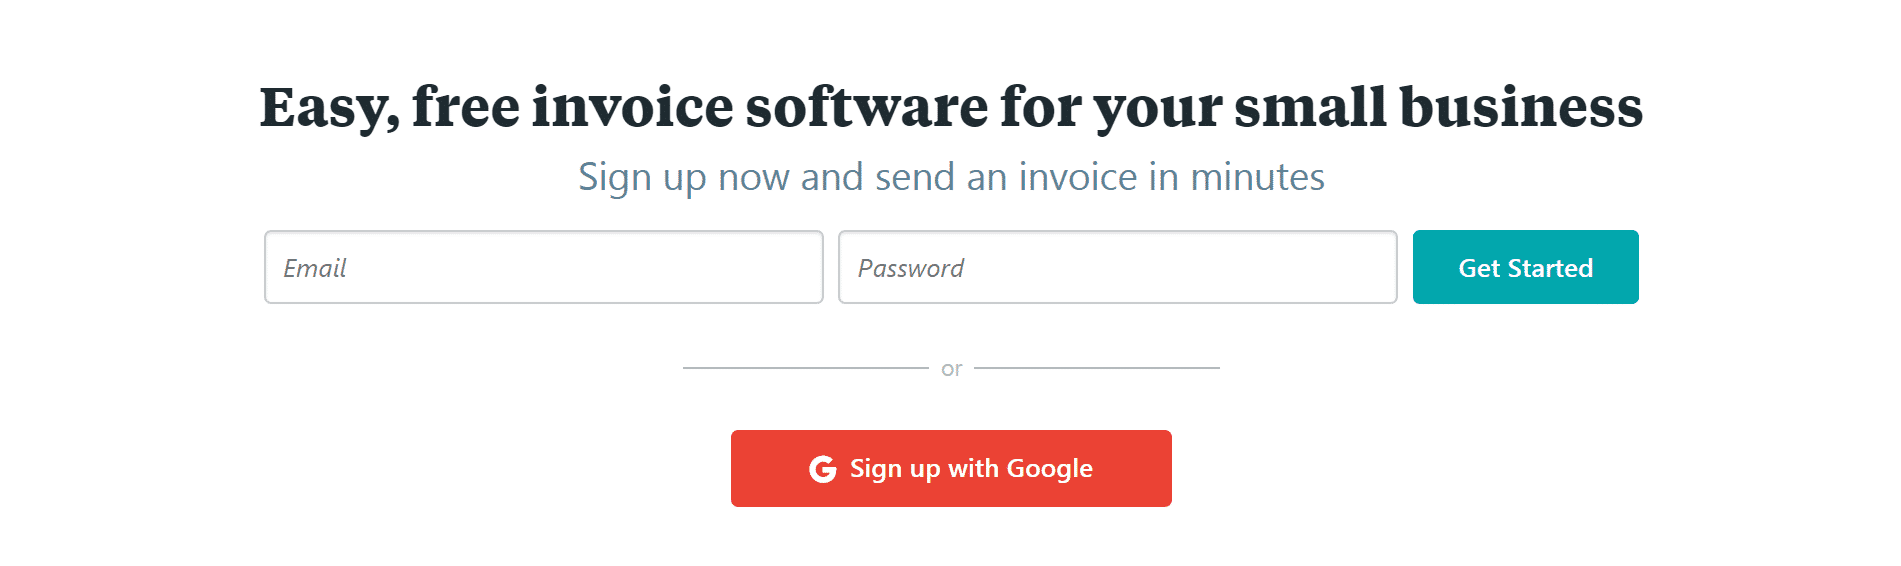 Free Invoices Software That Can Help Your Business